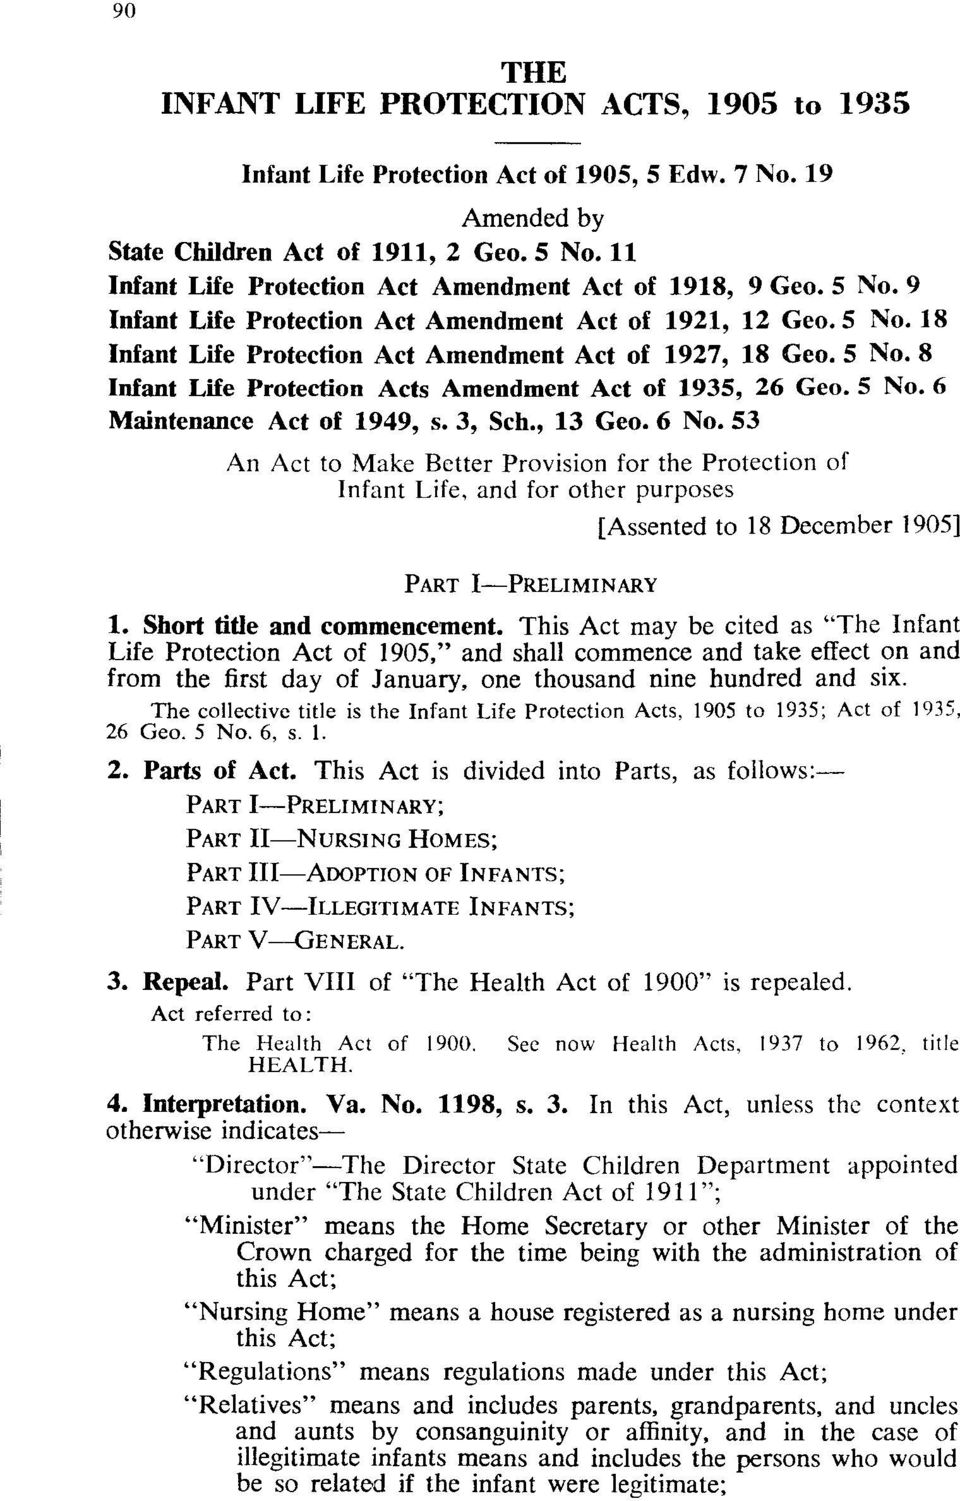 5 No.6 Maintenance Act of 1949, s. 3, Sch., 13 Geo. 6 No.